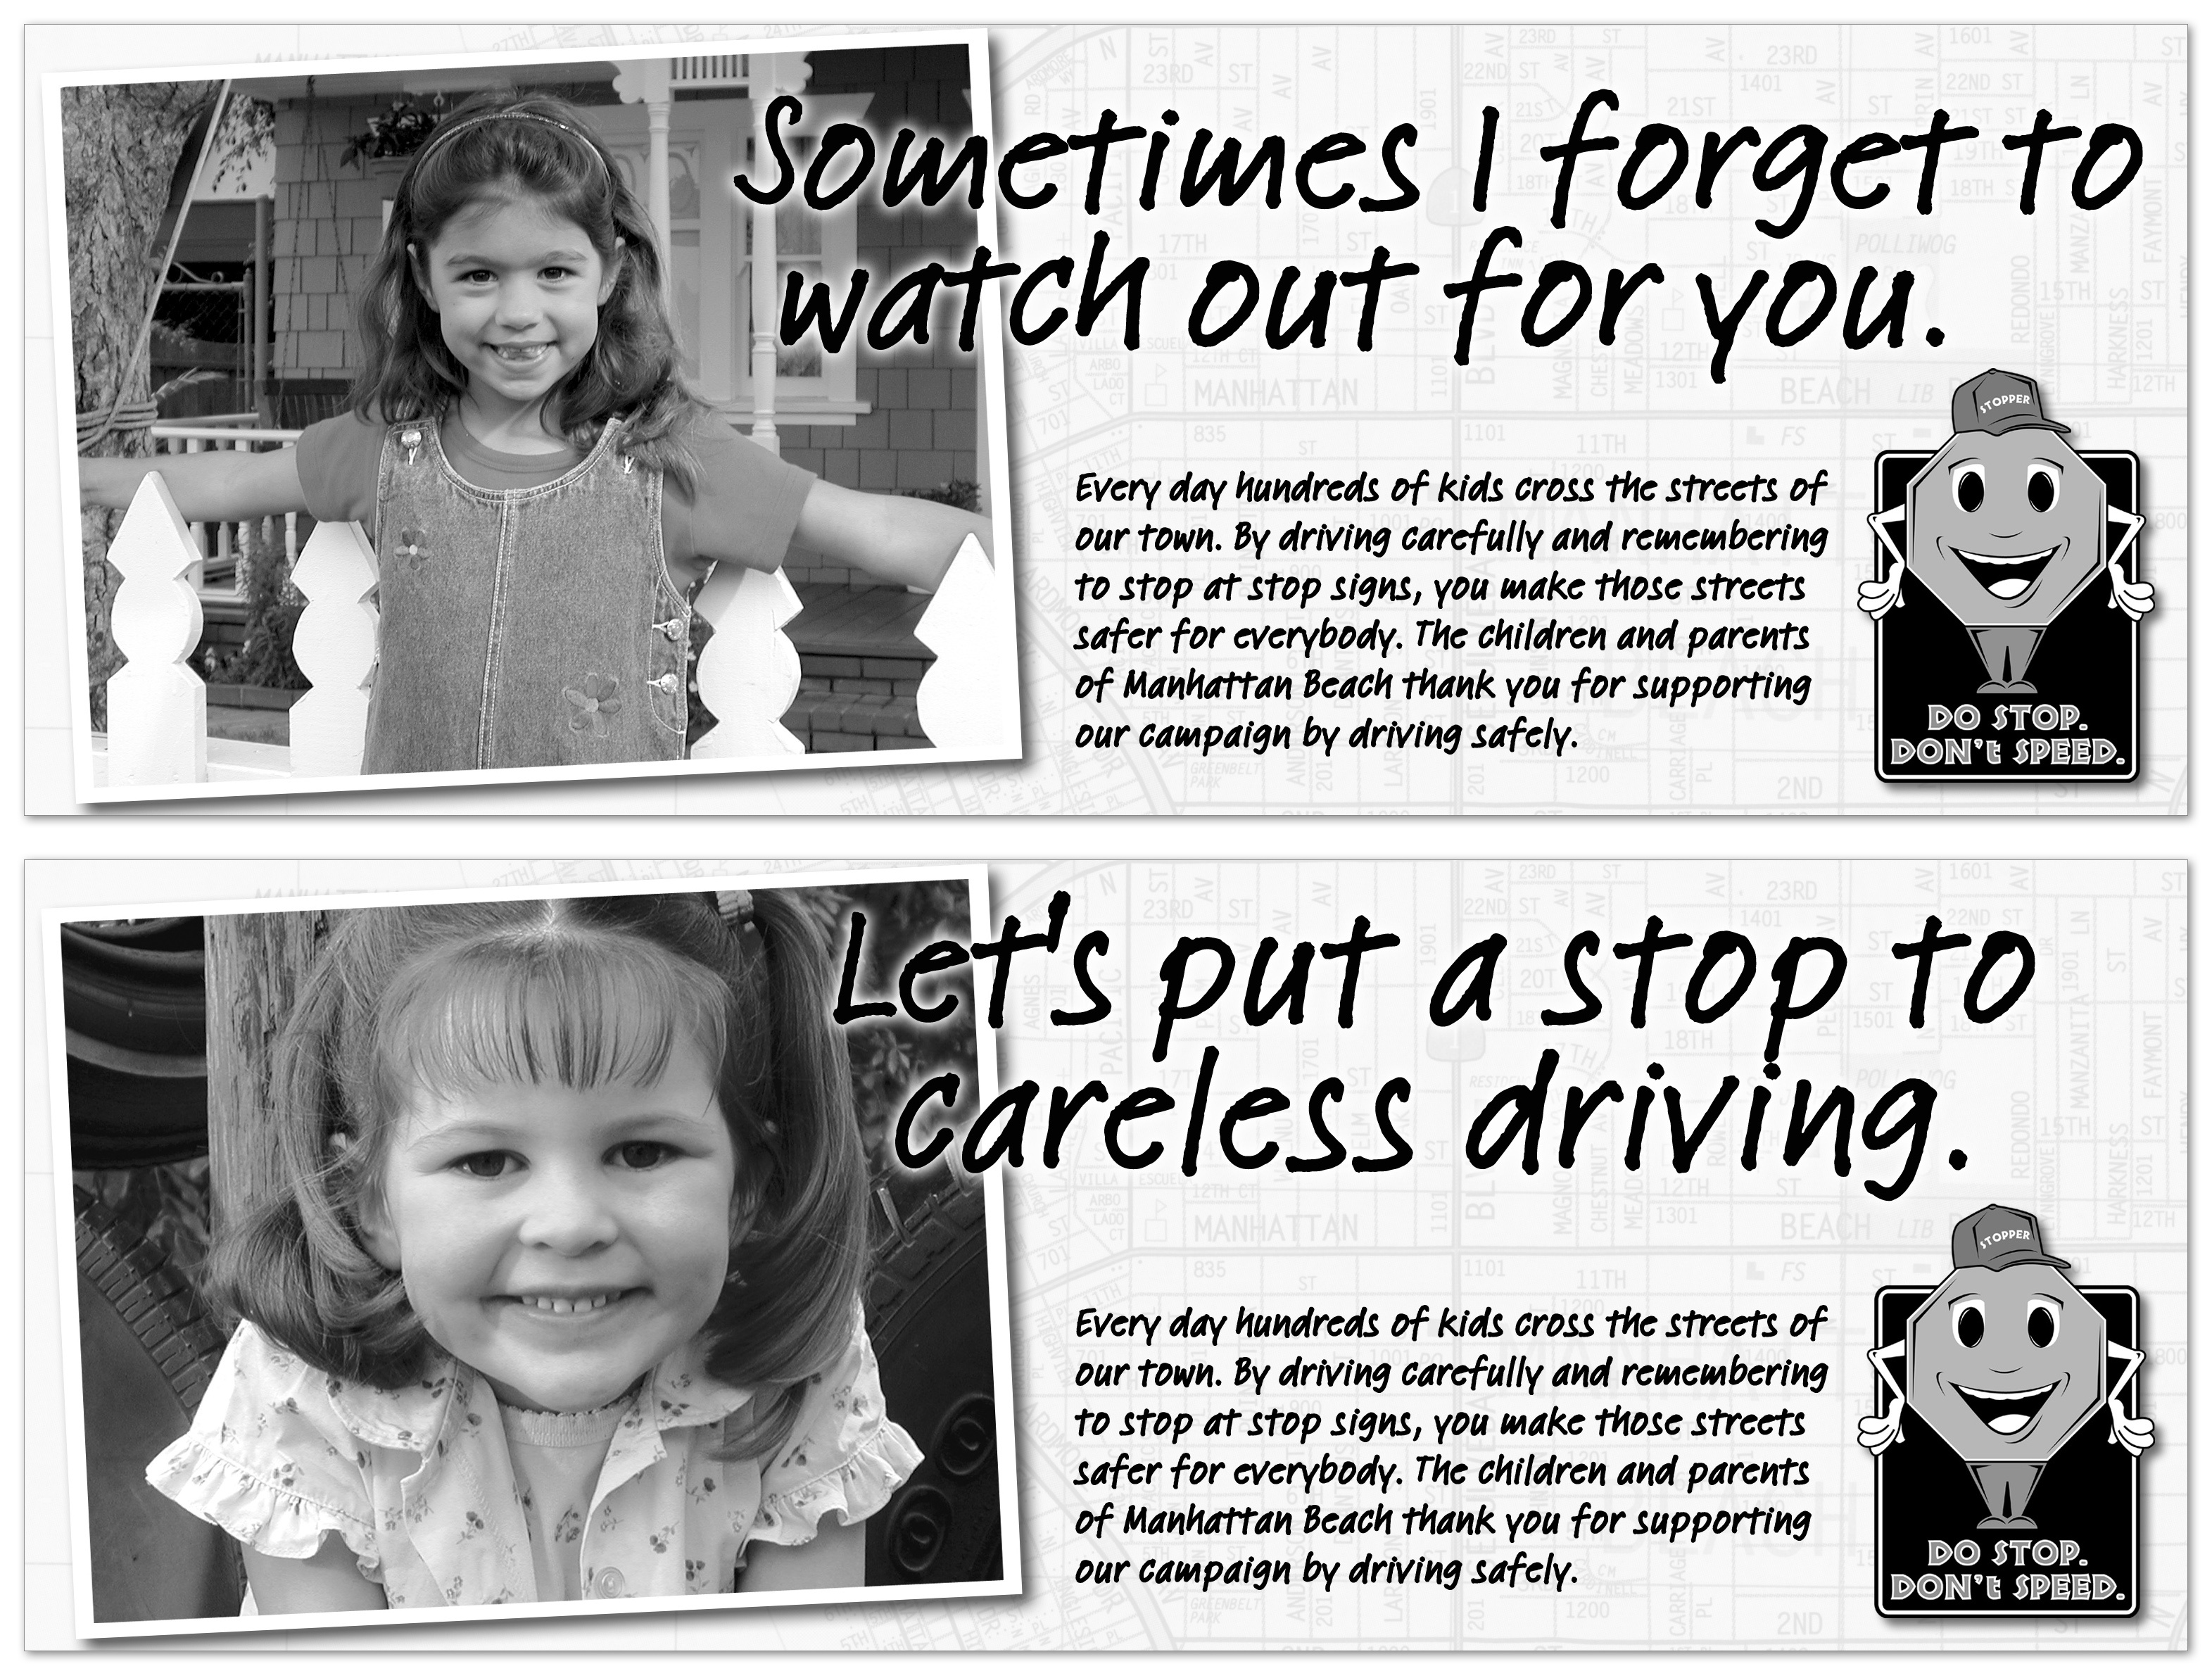 Traffic Safety newspaper campaign for the city of Manhattan Beach